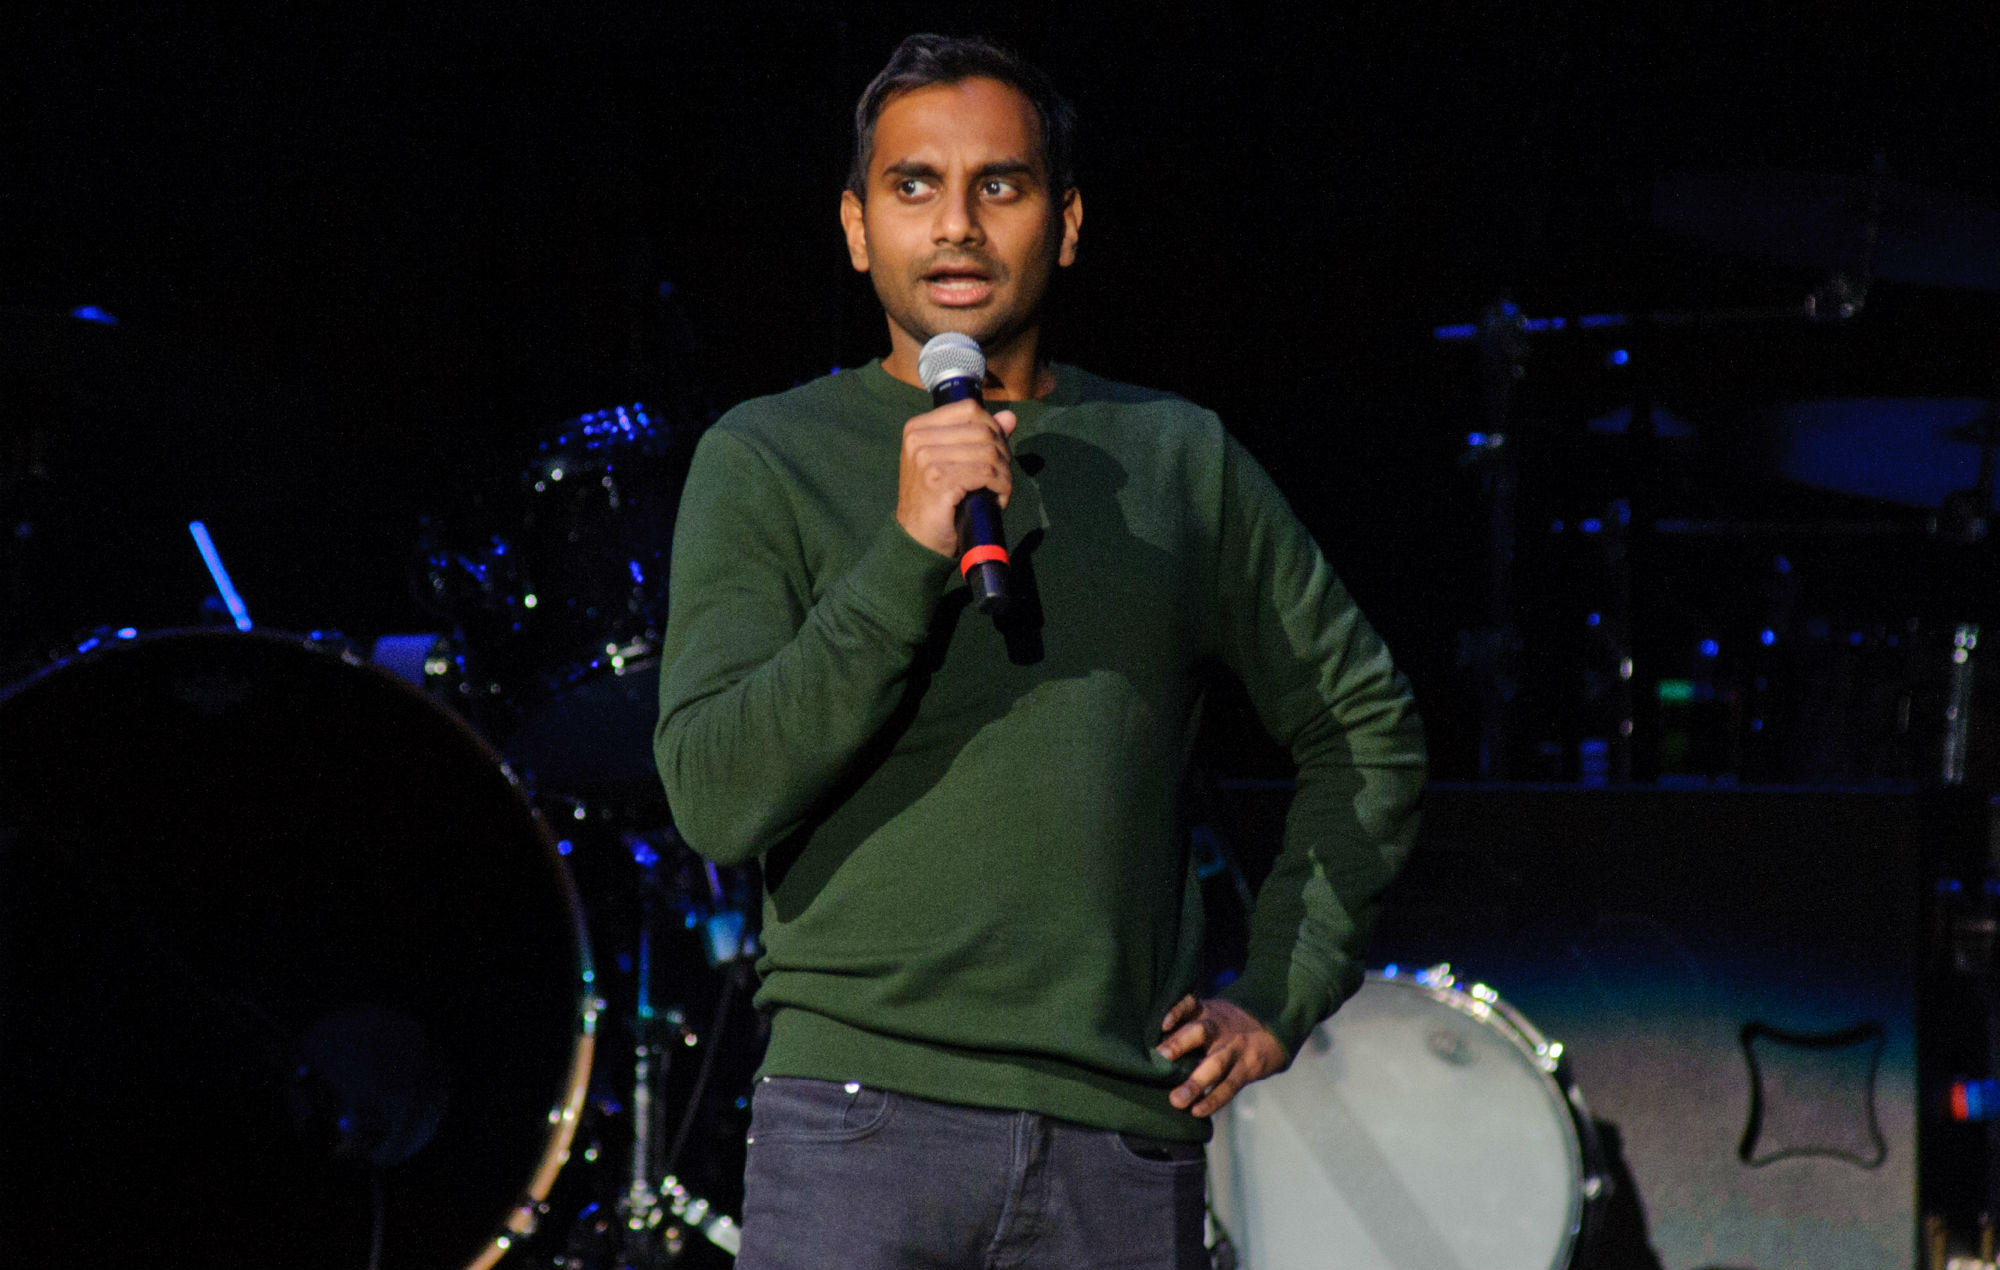 Aziz Ansari's 'Master Of None' reportedly set to return after four-year hiatus